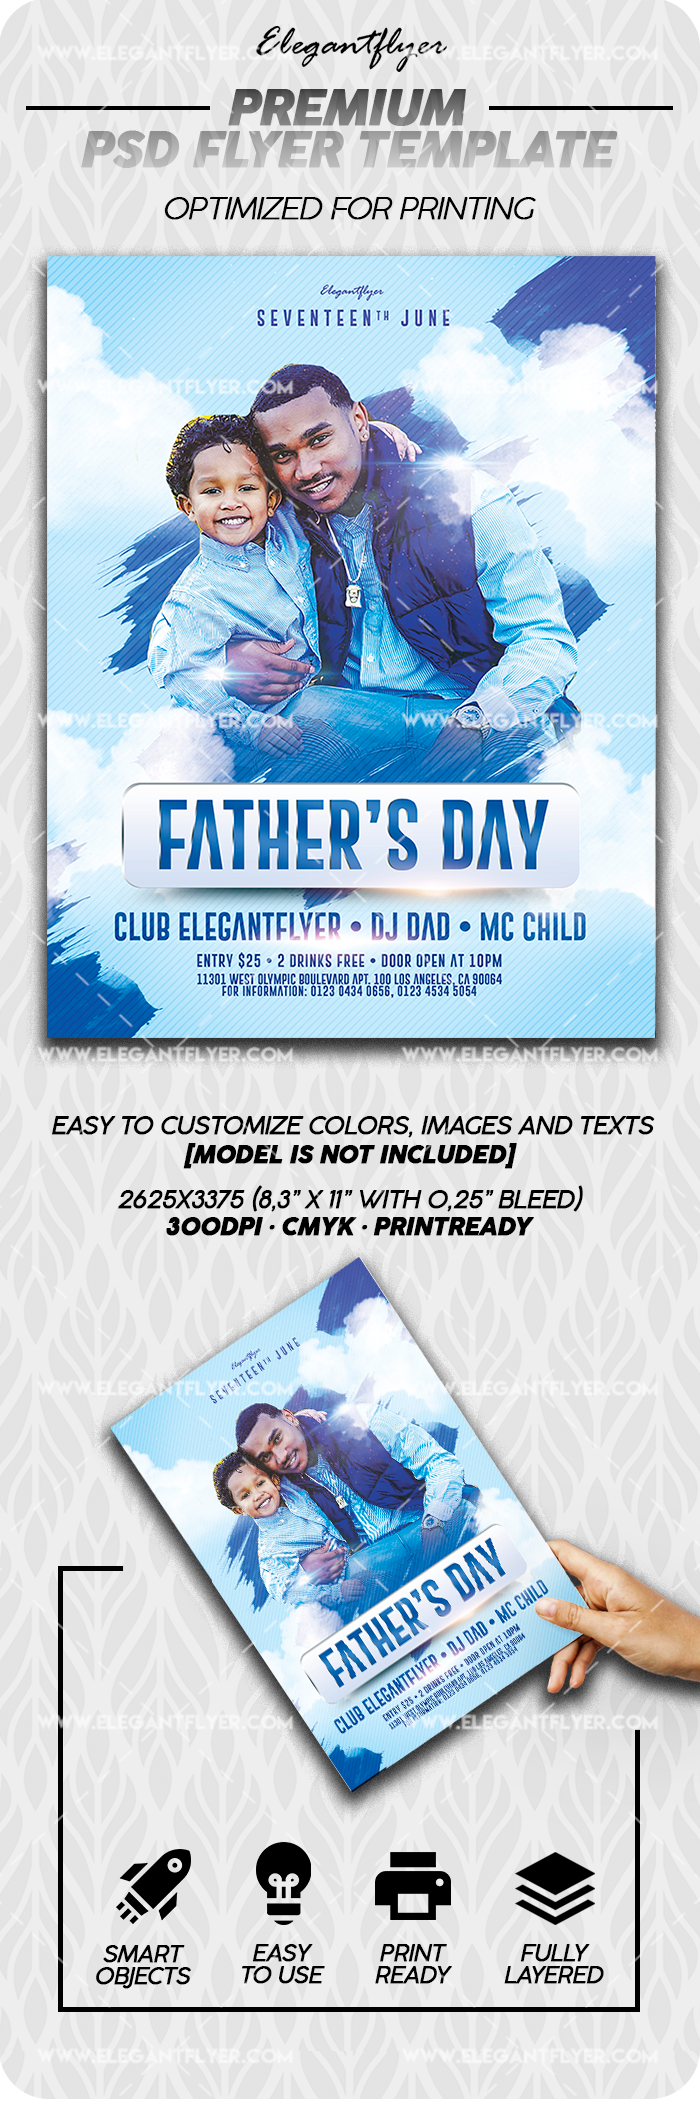 Father's Day – 3rd Sunday of June – PSD Flyer Template